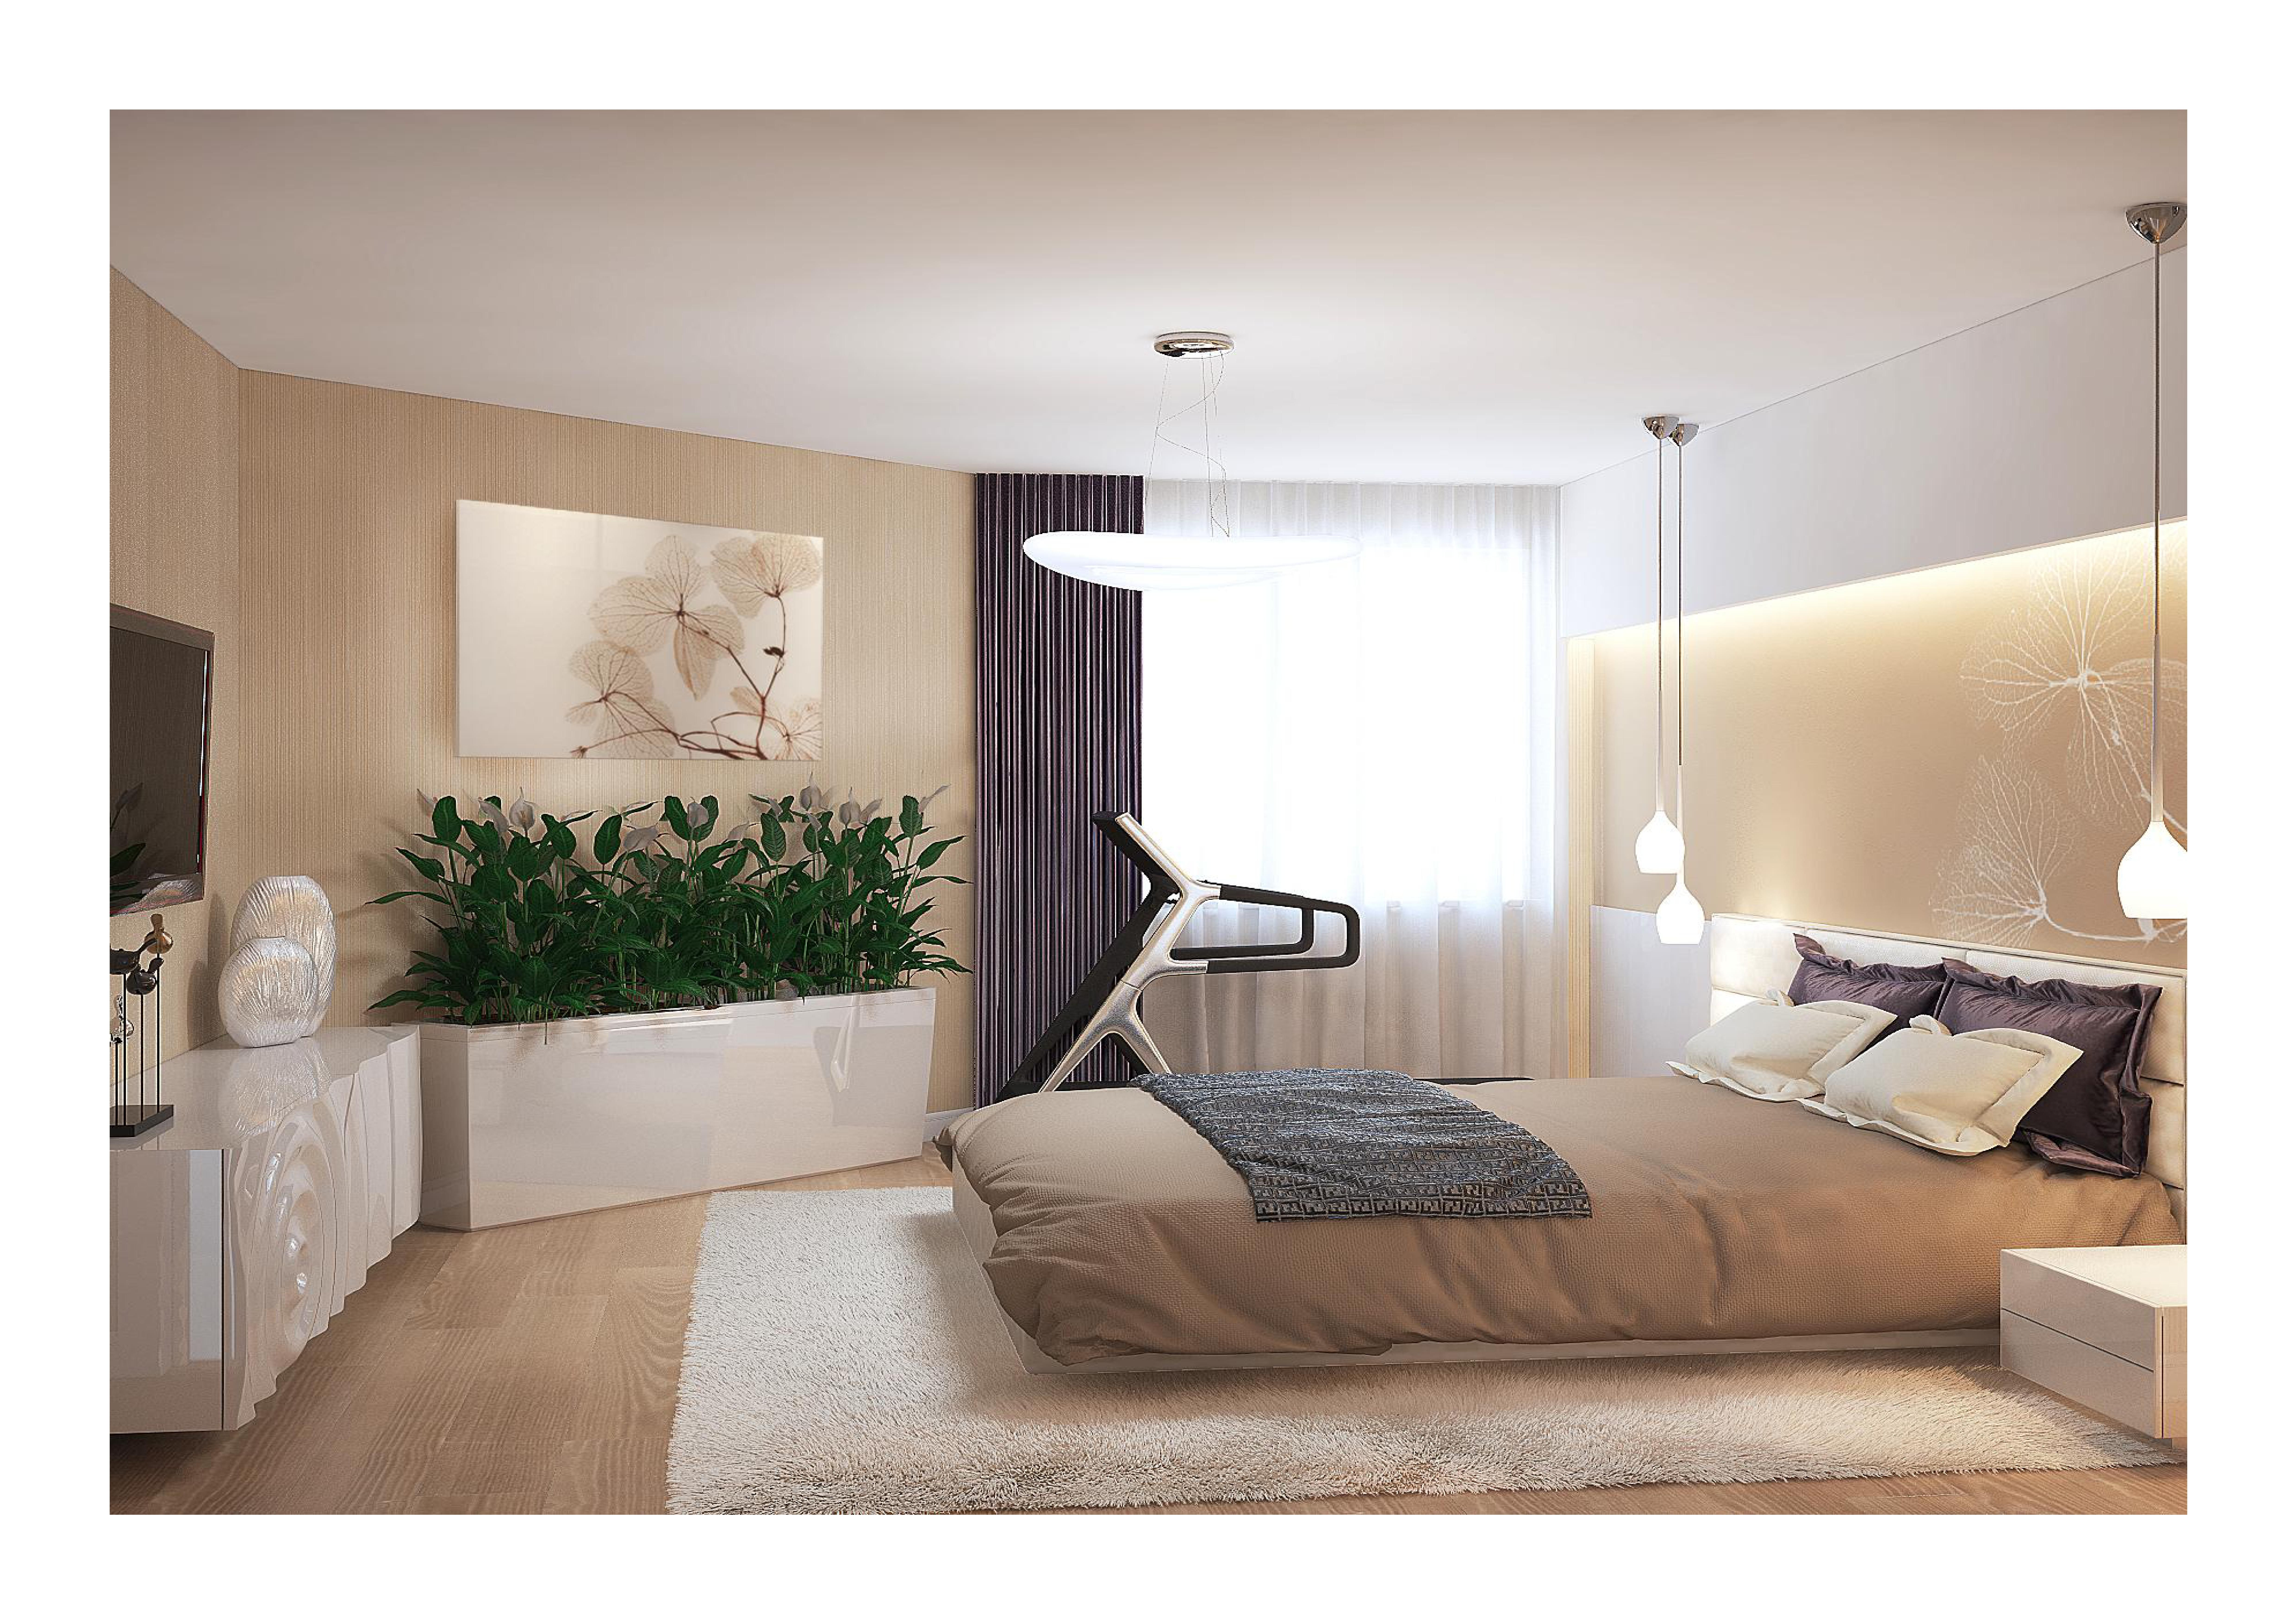 City Chic Style Bedroom By Ulyana Lipova Interior Design Course Student In European Design